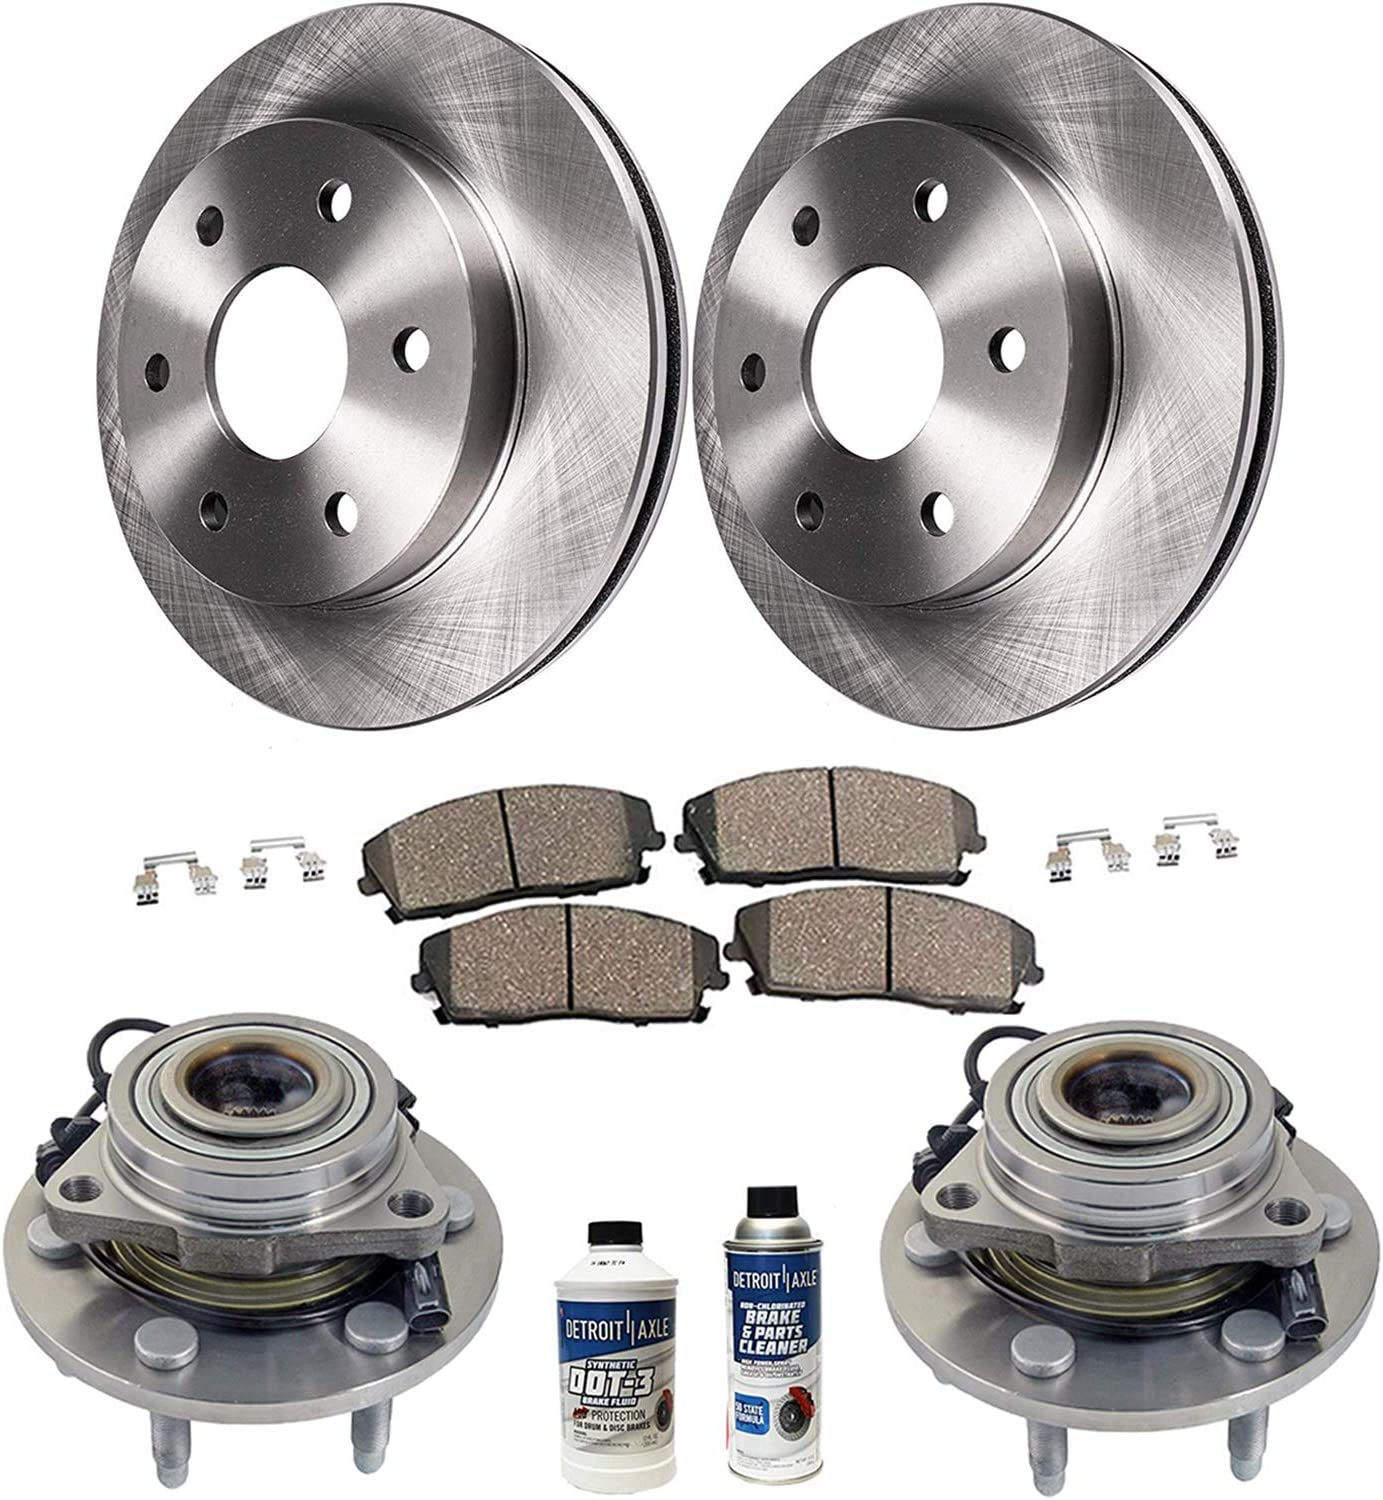 Rotors Metallic Pads F+R OE Replacement 2007 2008 Chevy Silverado 1500 2WD//4WD